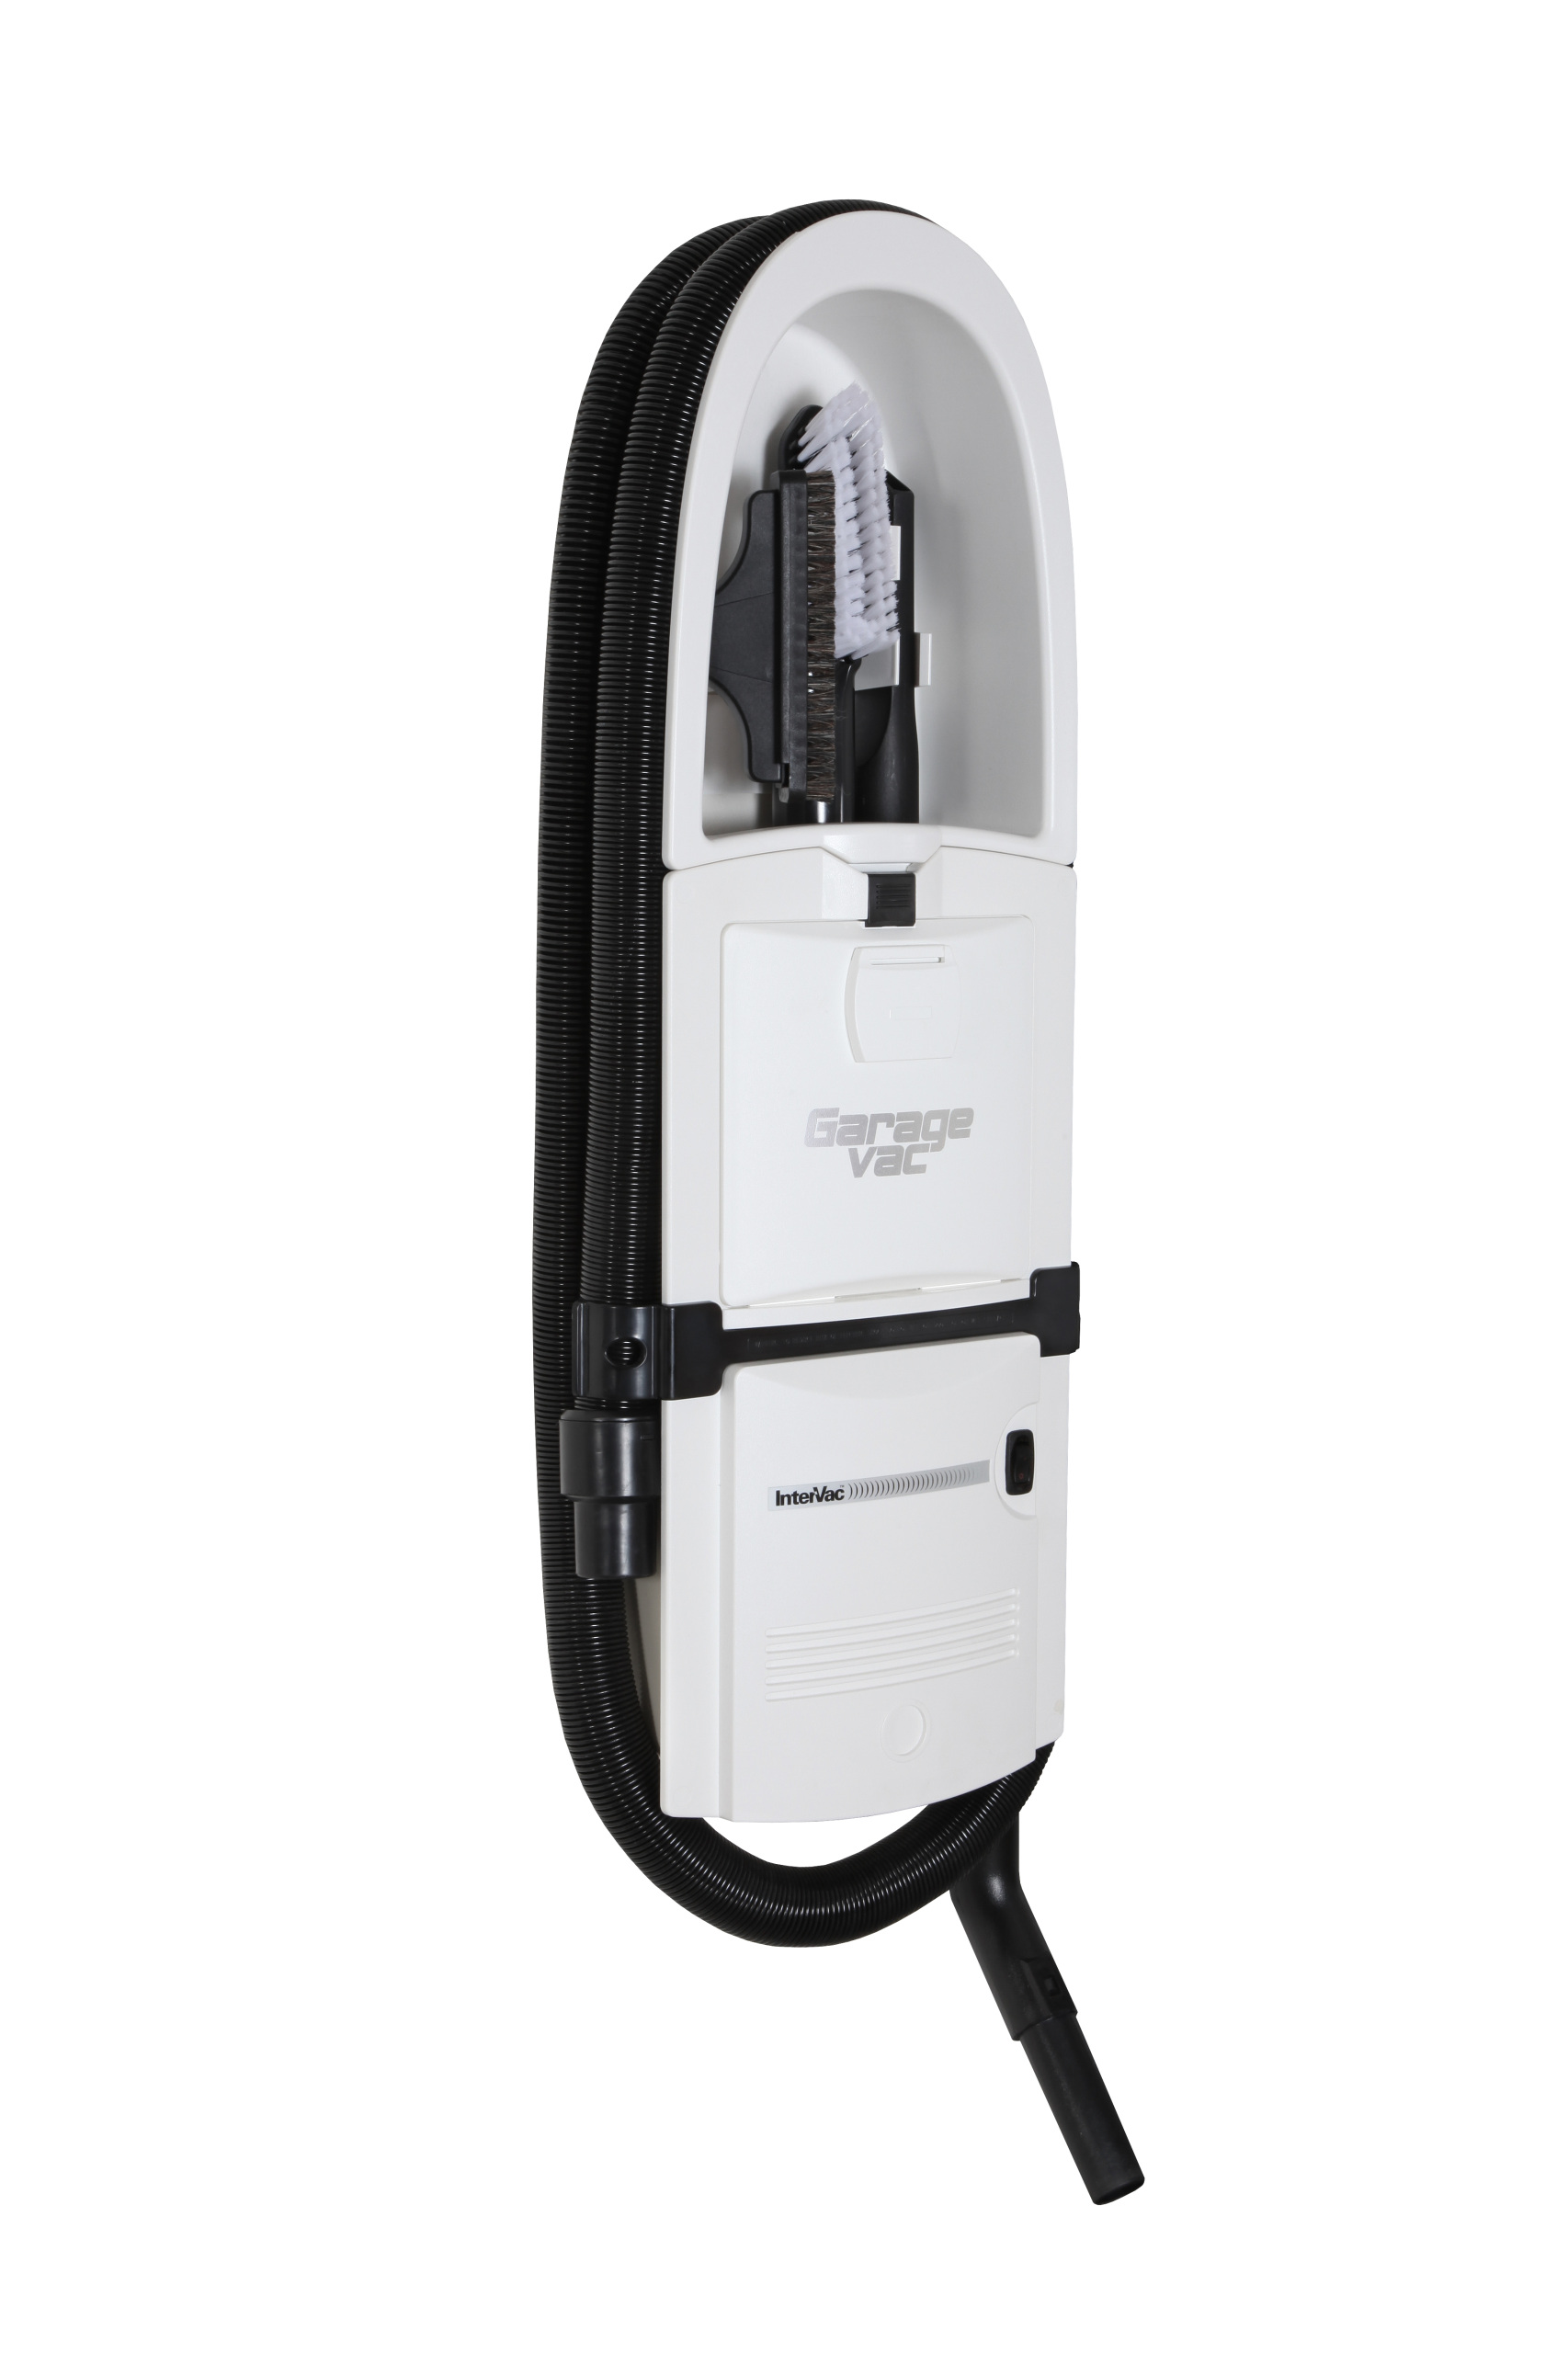 GarageVac Flush Mounted Garage Vacuum - White